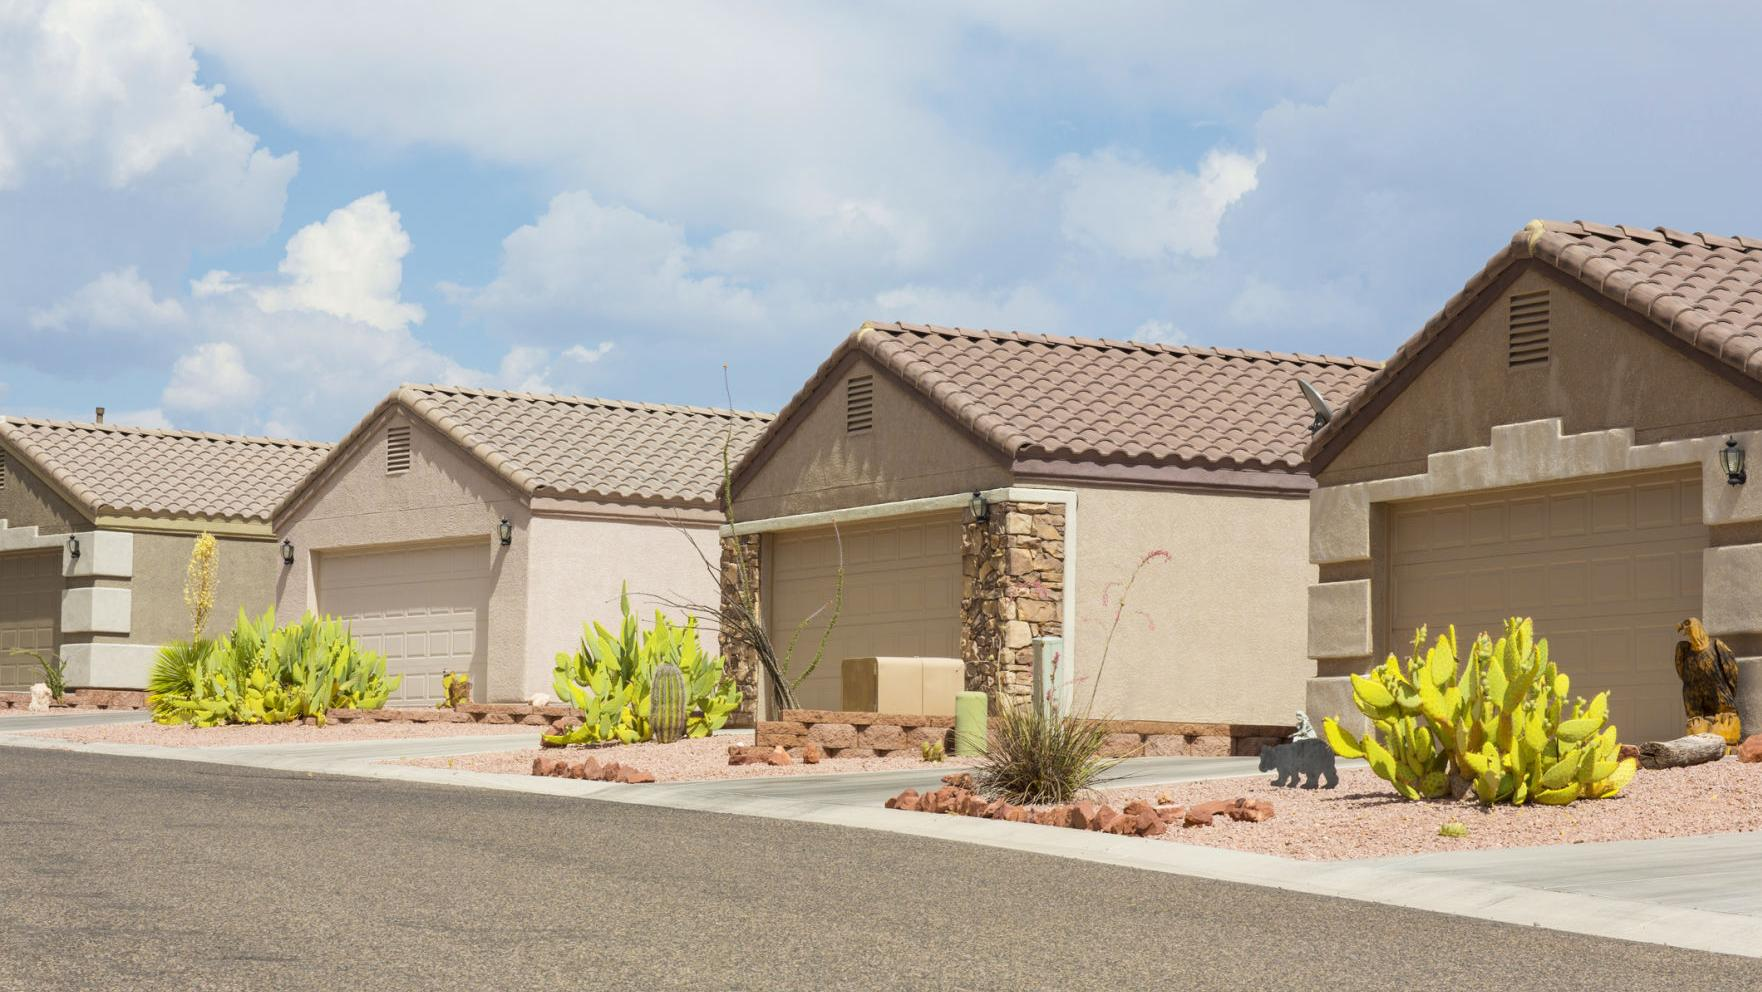 Rosie on the House: The pros and cons of renting or buying a home | Home &  Garden | tucson.com